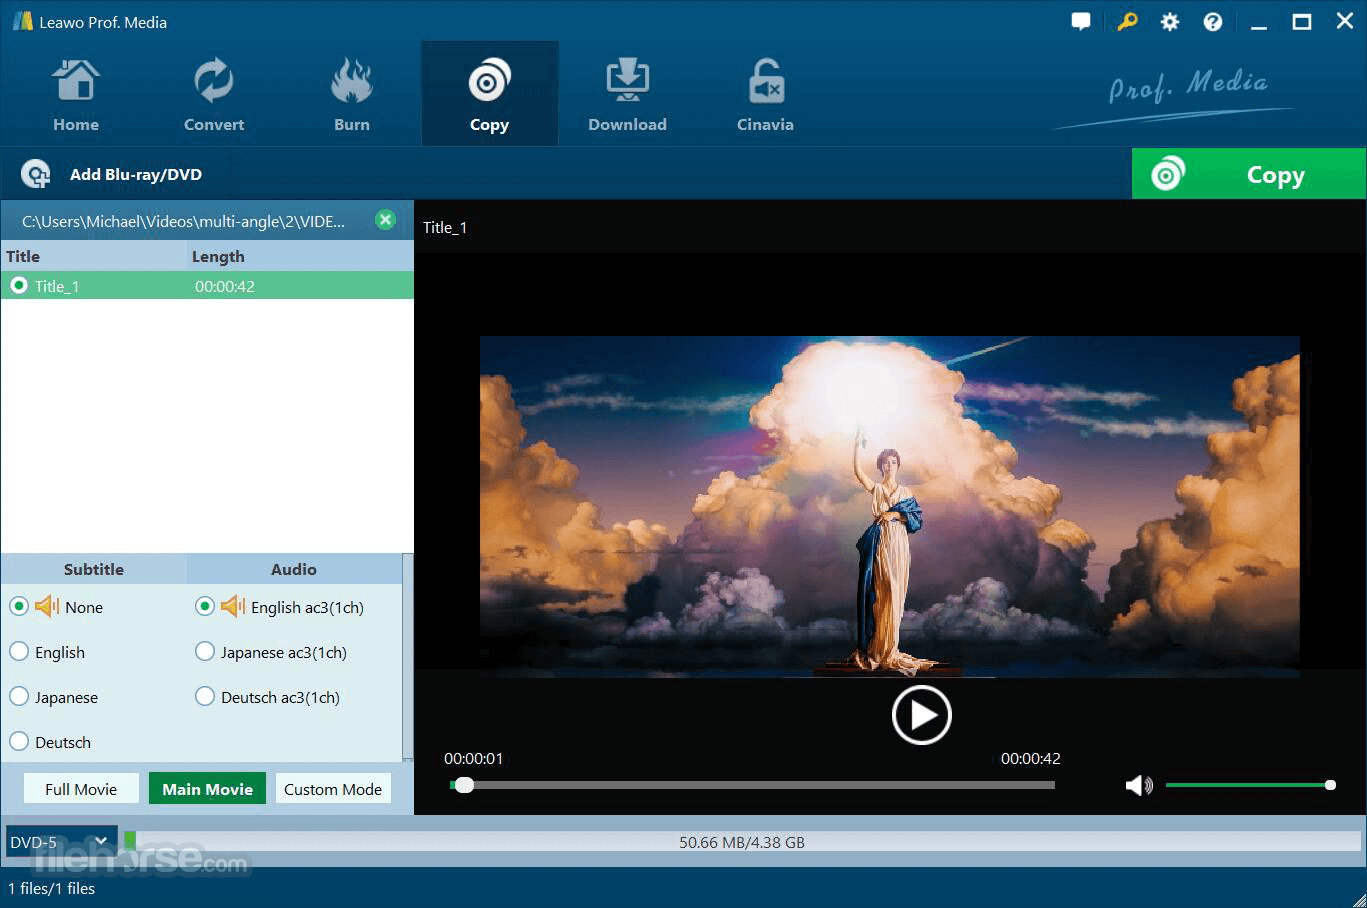 Leawo Prof. Media 8.3.0.3 Screenshot 3